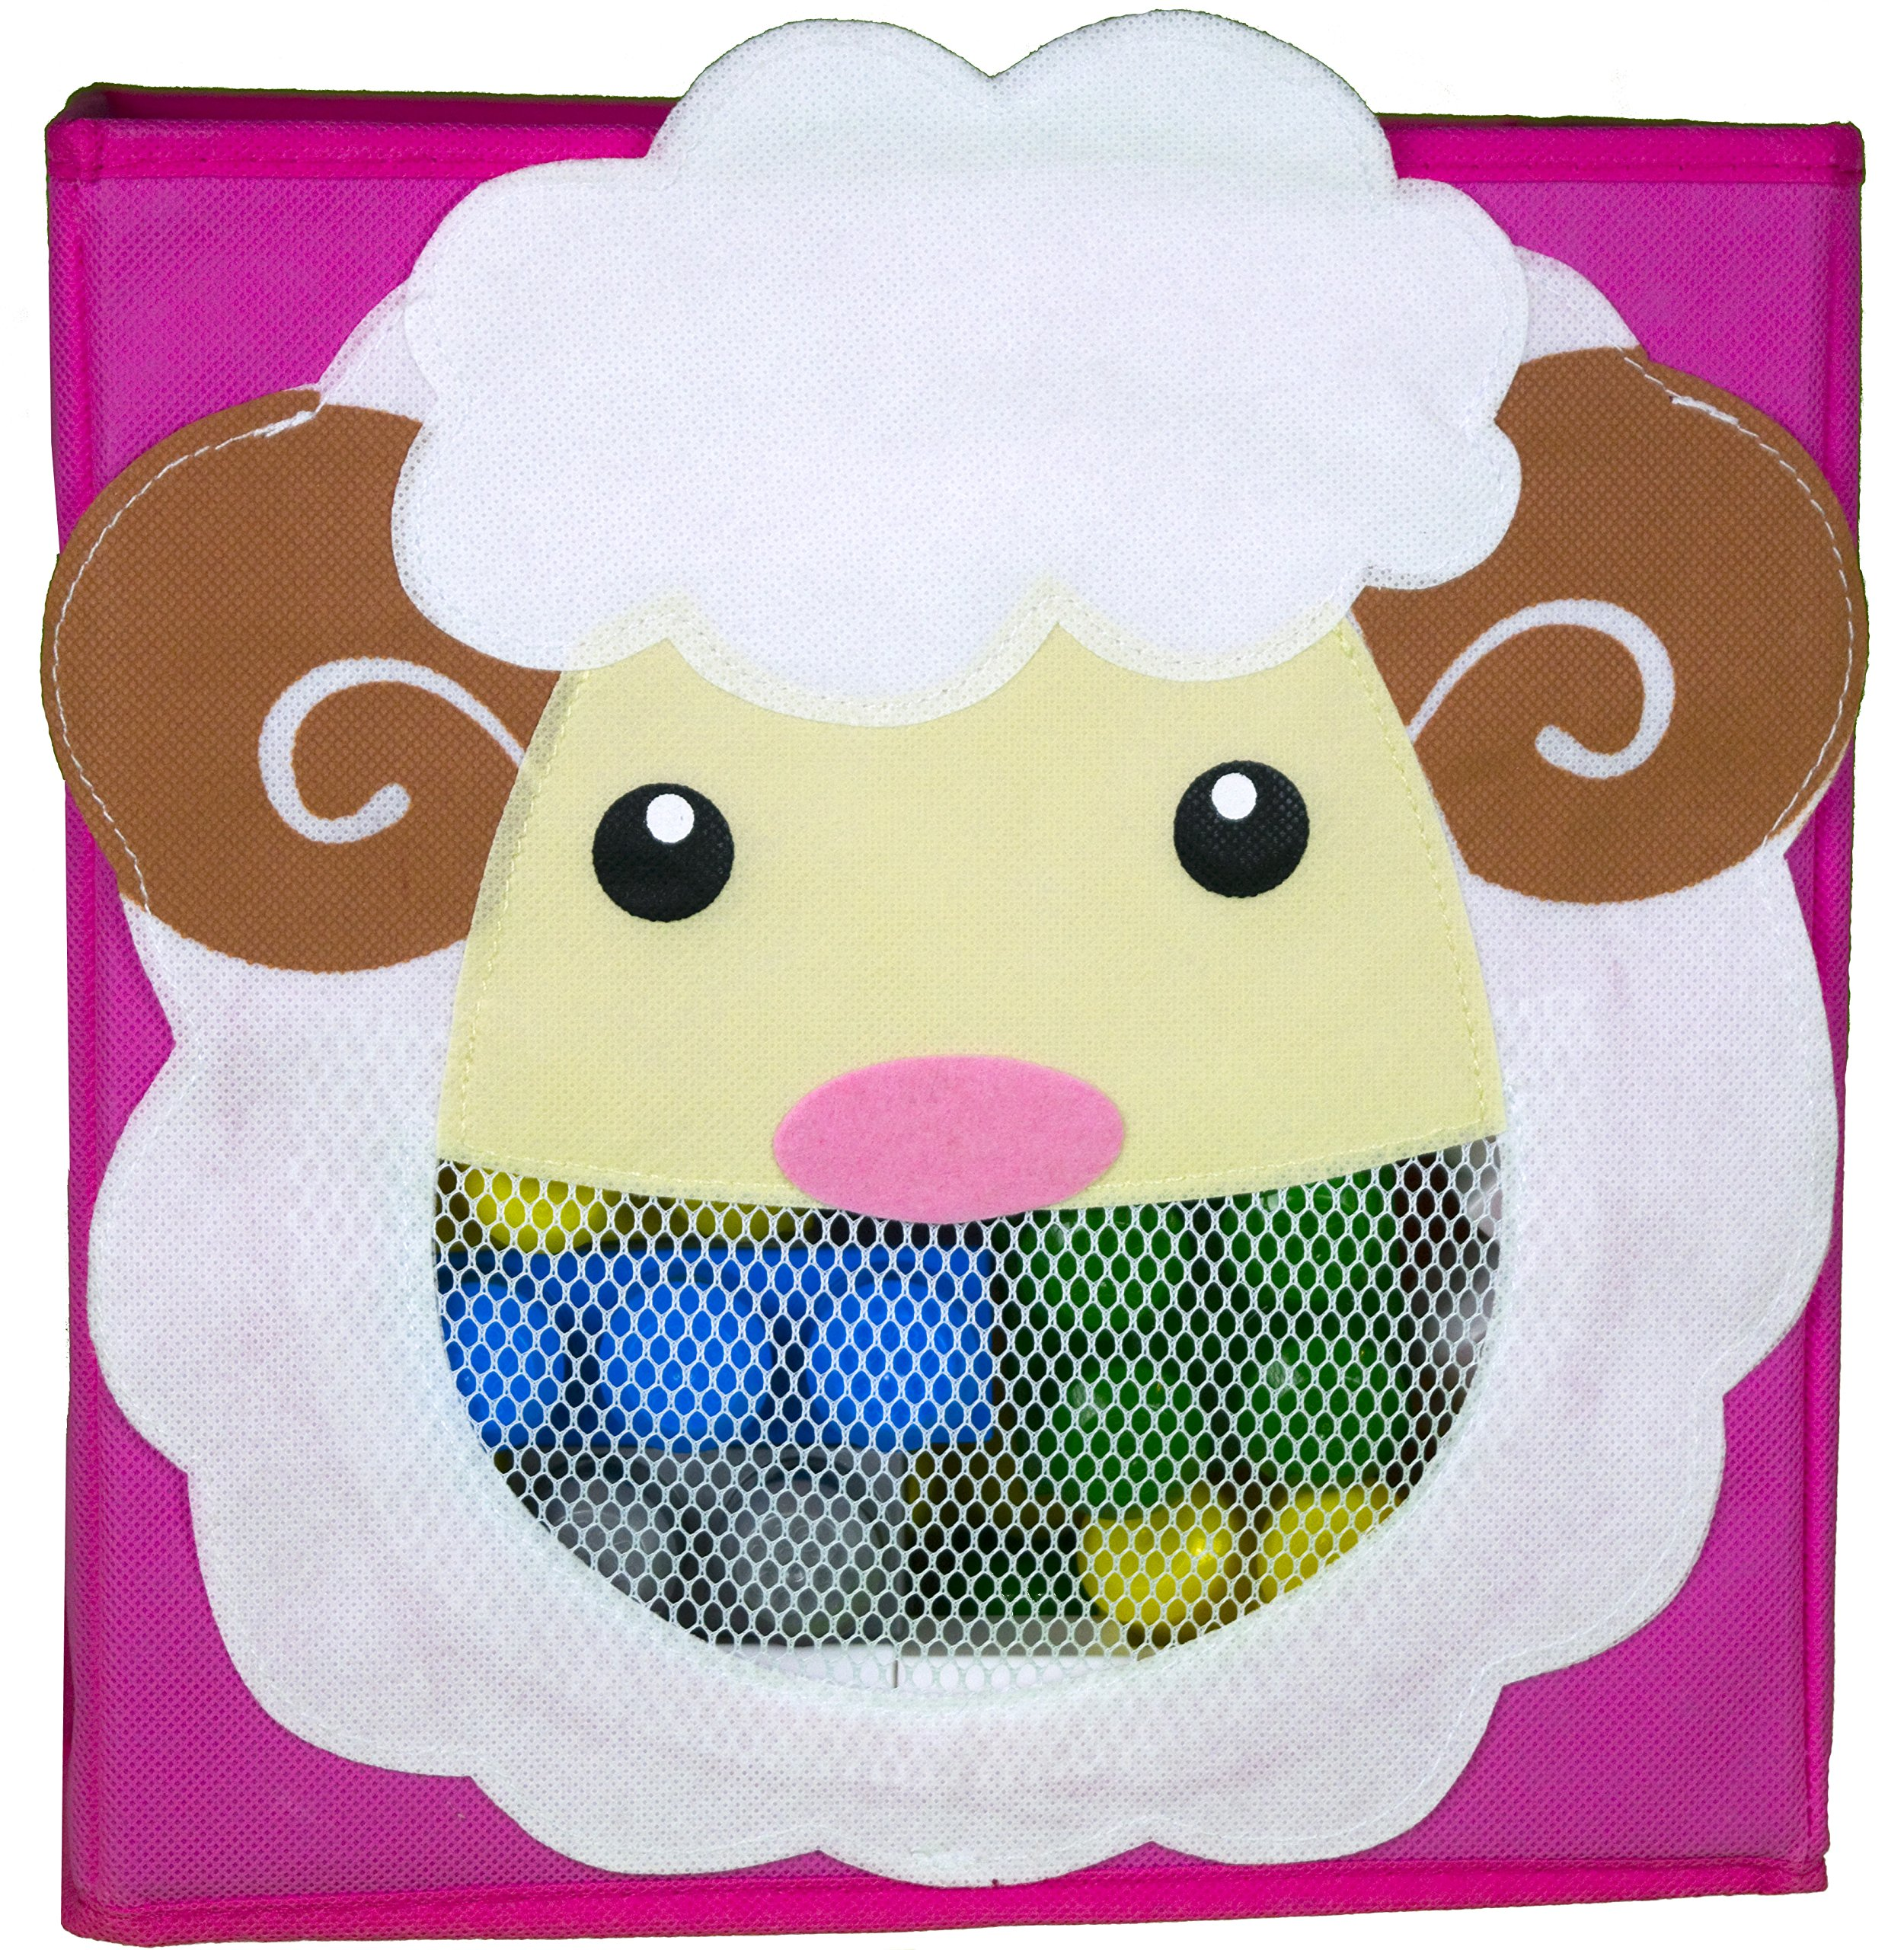 Cute Collapsible Storage Bins w/ View Window- Foldable cubes - 11x11 in. Folding Box (SHEEP)